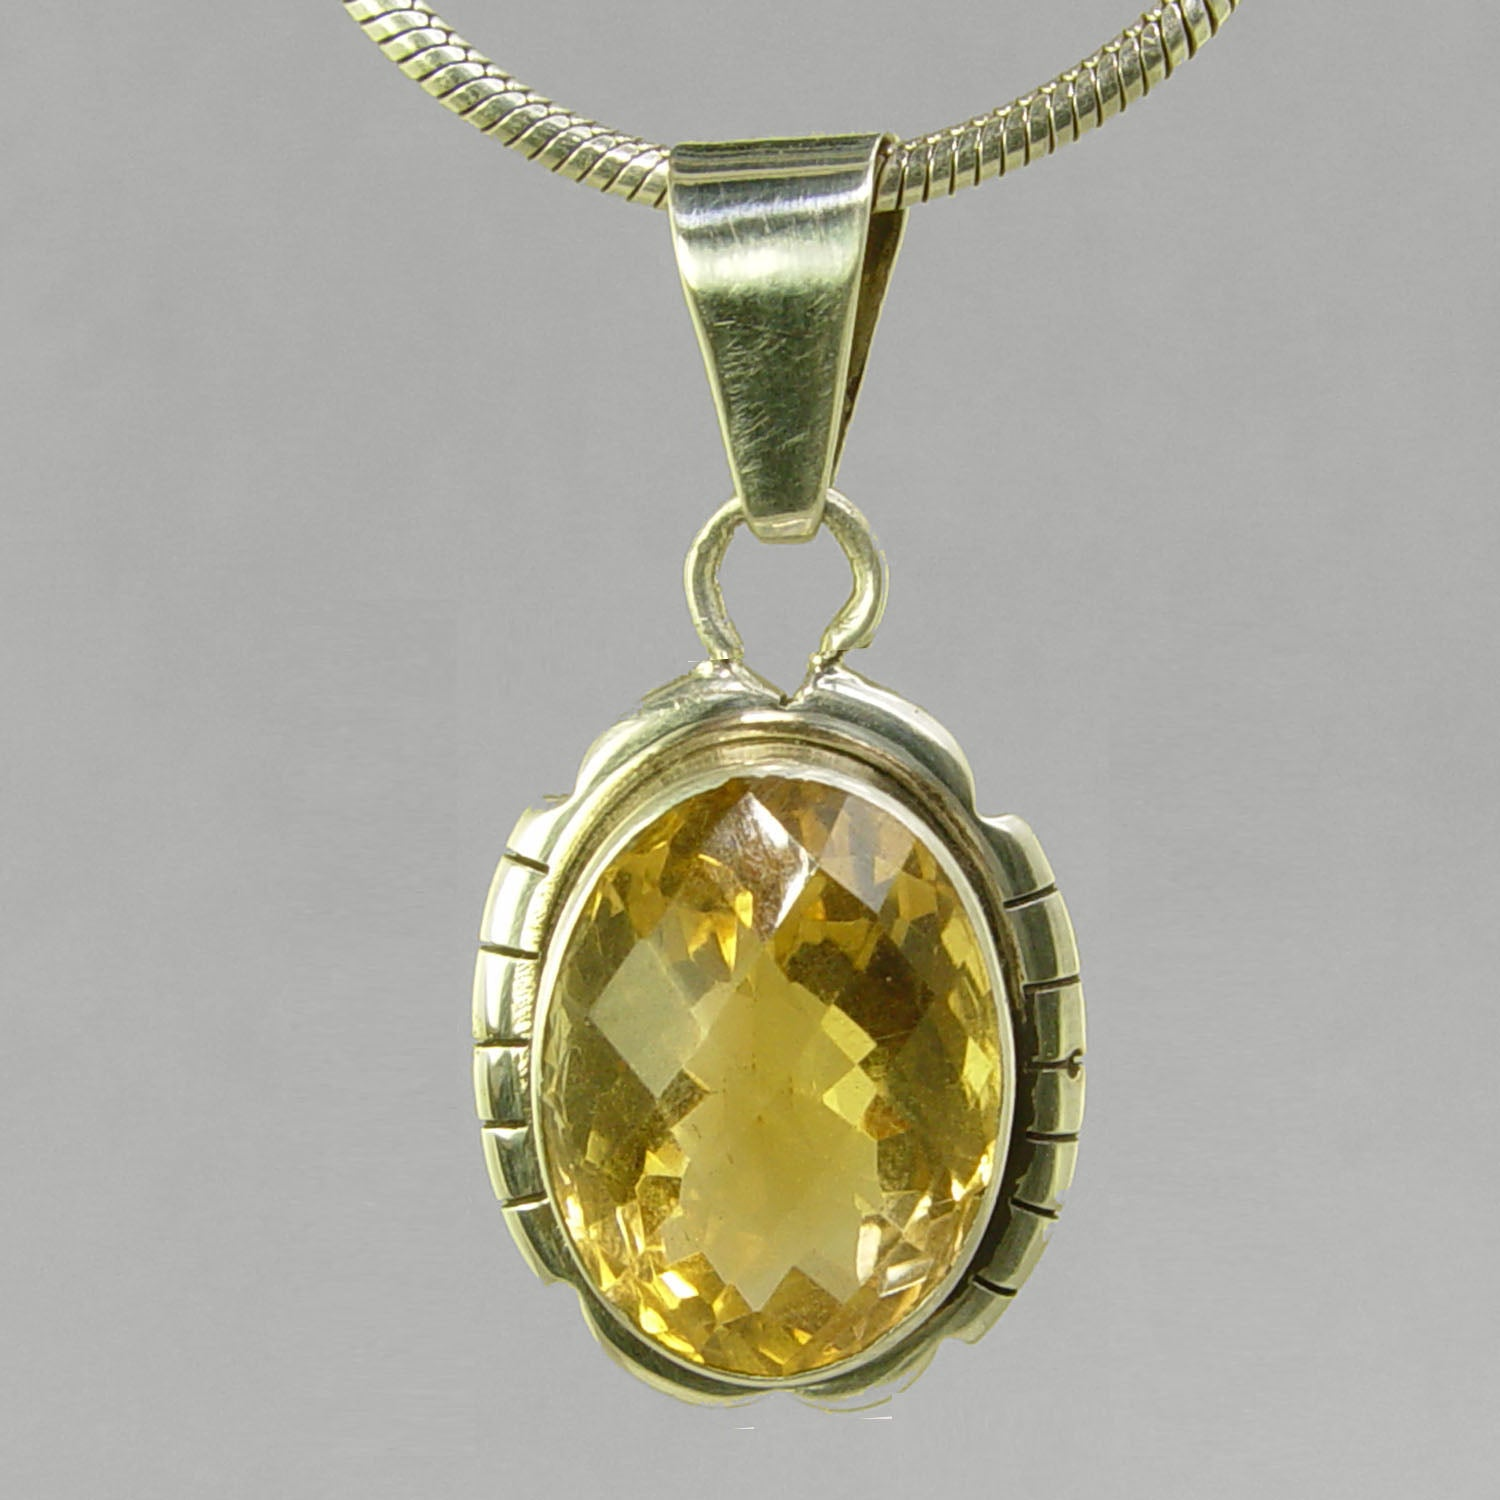 Citrine 10 ct Oval Fancy Bezel Set Sterling Silver Pendant